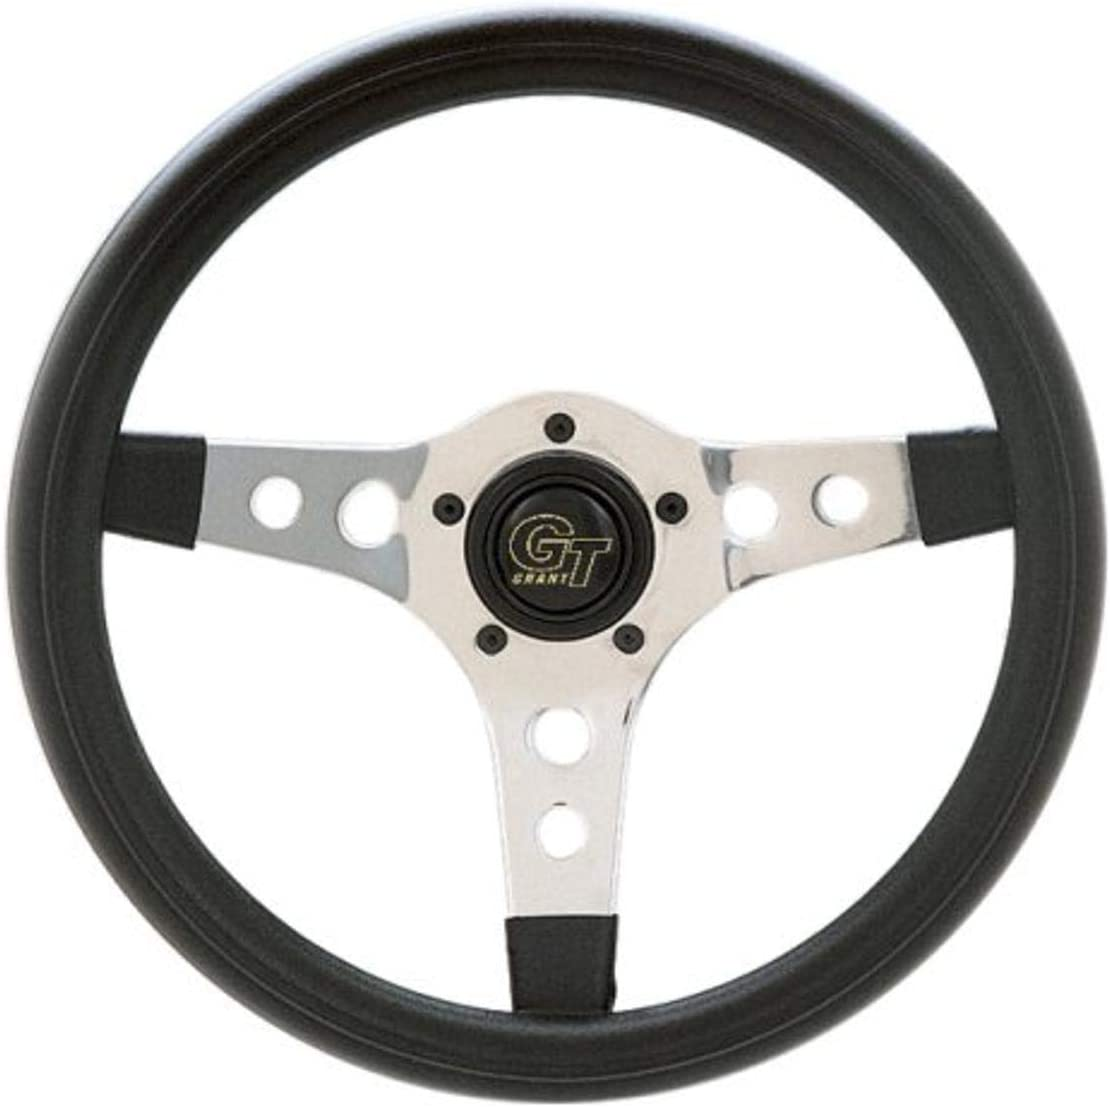 Grant 701 GT Special Campaign Sport Selling and selling Wheel black Steering